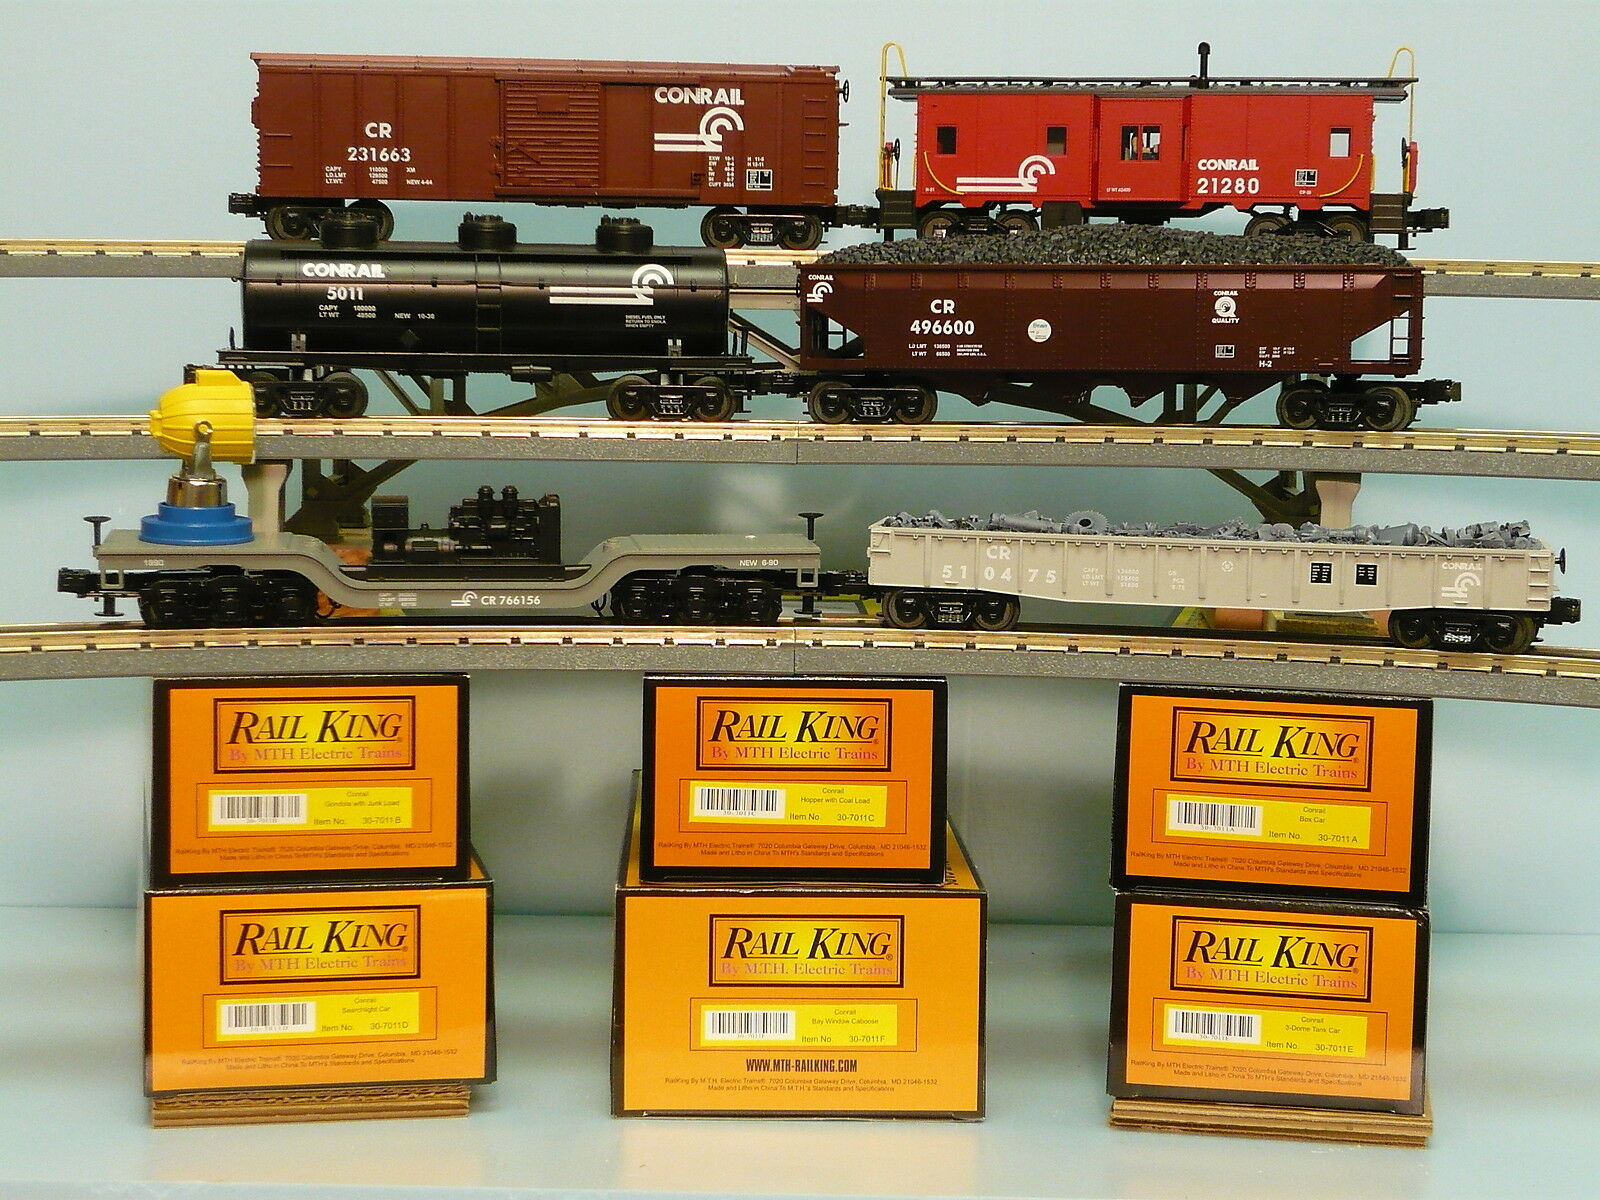 MTH Conrail Freight Set Railking O O27 6 Car Freight Set 30-7011